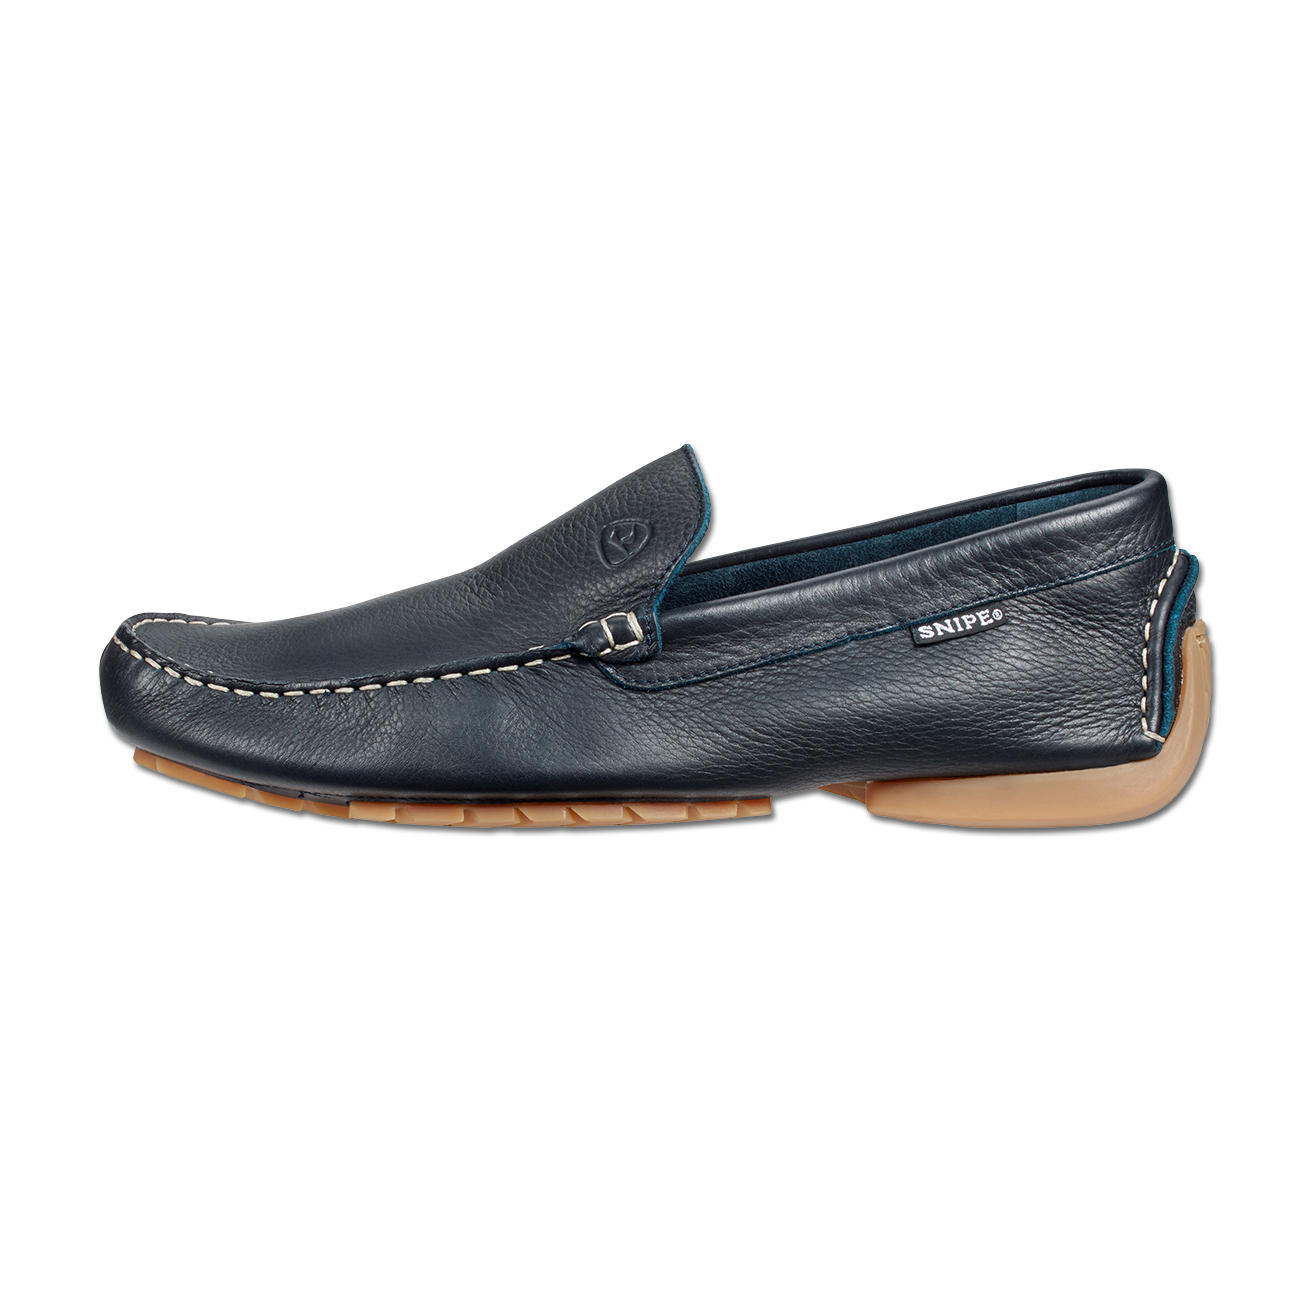 Can Leather Shoes Be Washed In Washing Machine